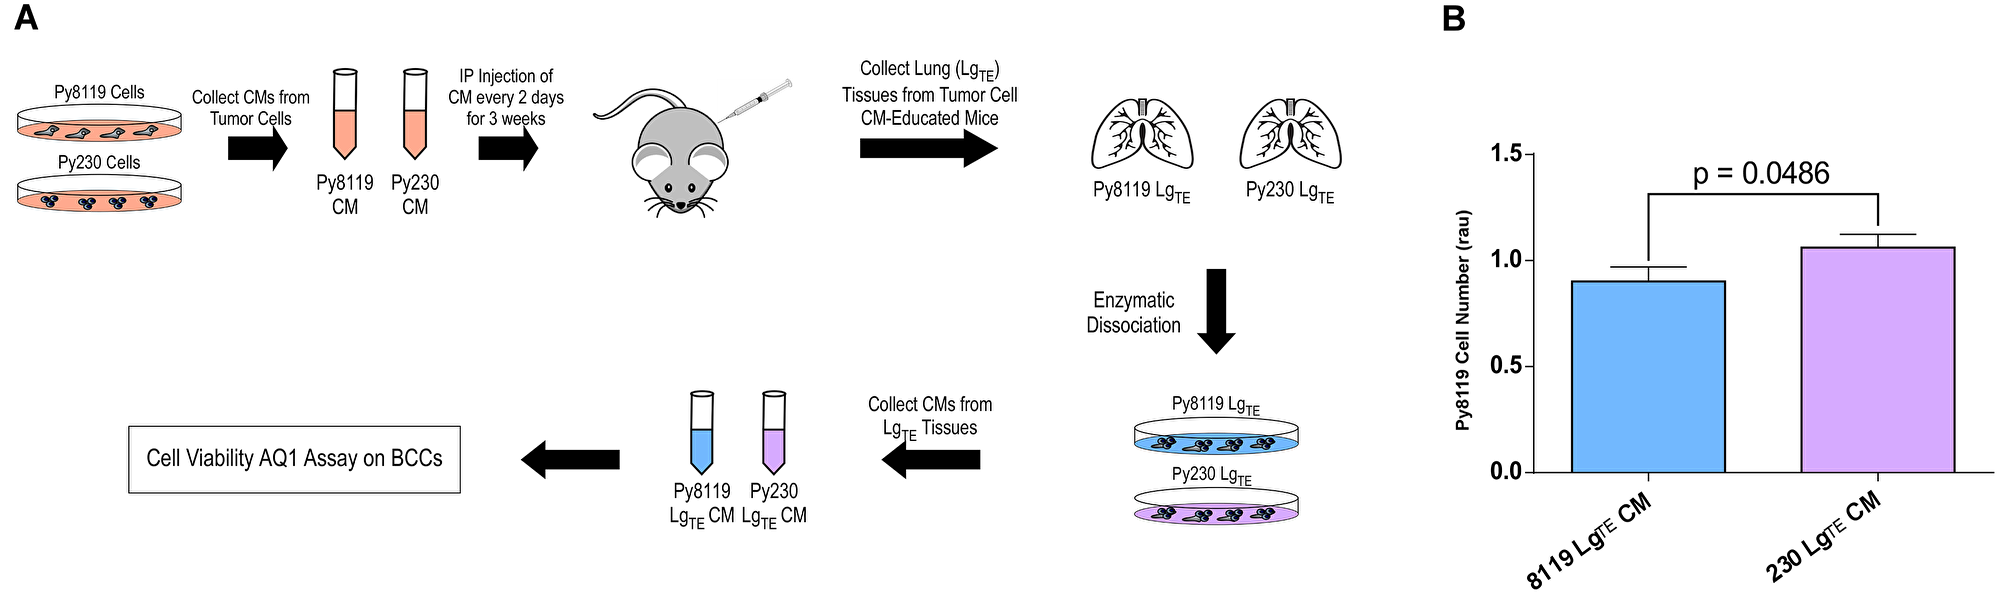 The secretomes of metastatic breast cancer cells promote a tumor-supportive environment in the mouse lung.